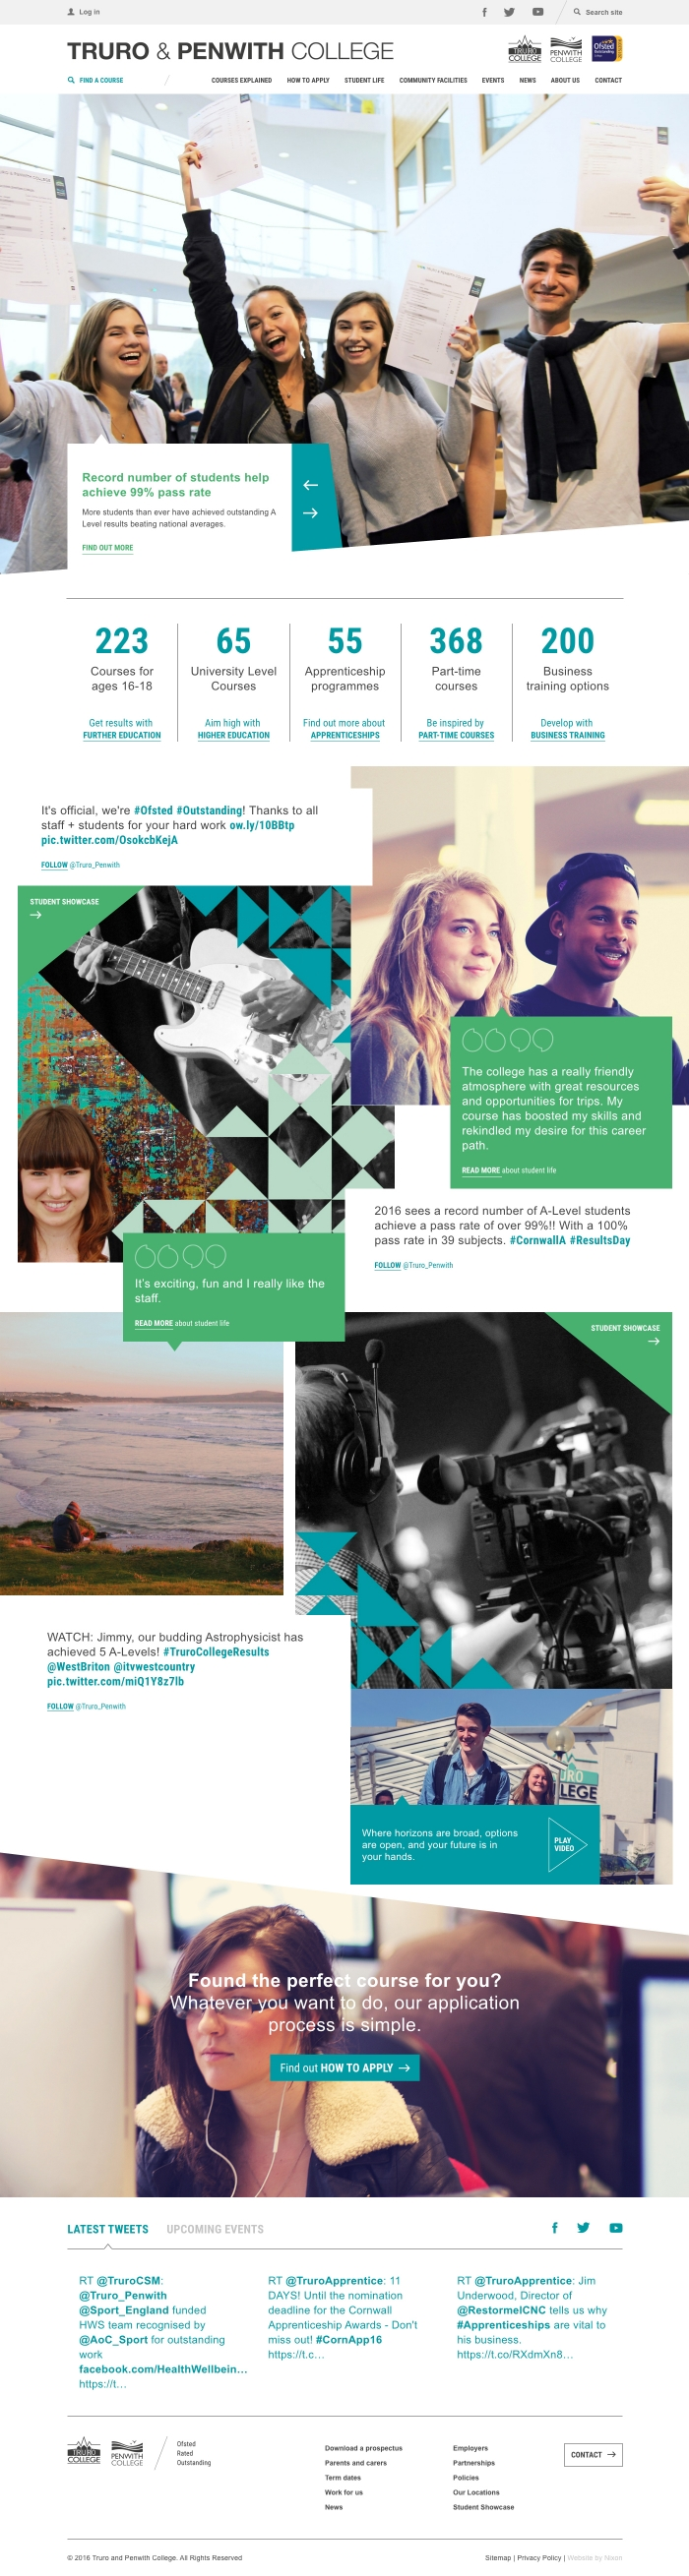 The Truro and Penwith College website homepage.